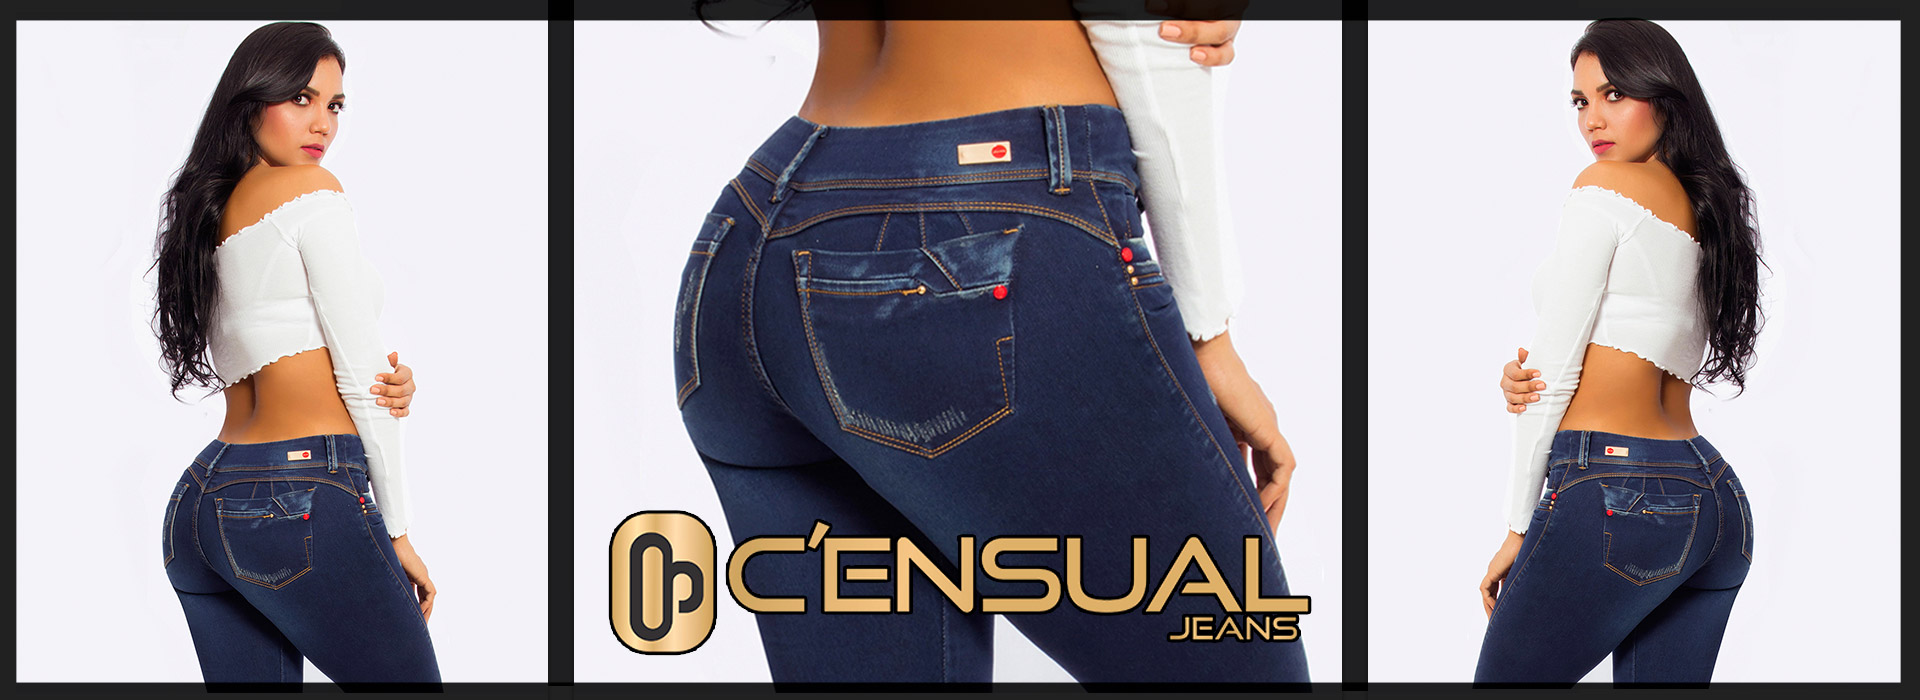 Censual Jeans - Fabricante de Jeans colombianos